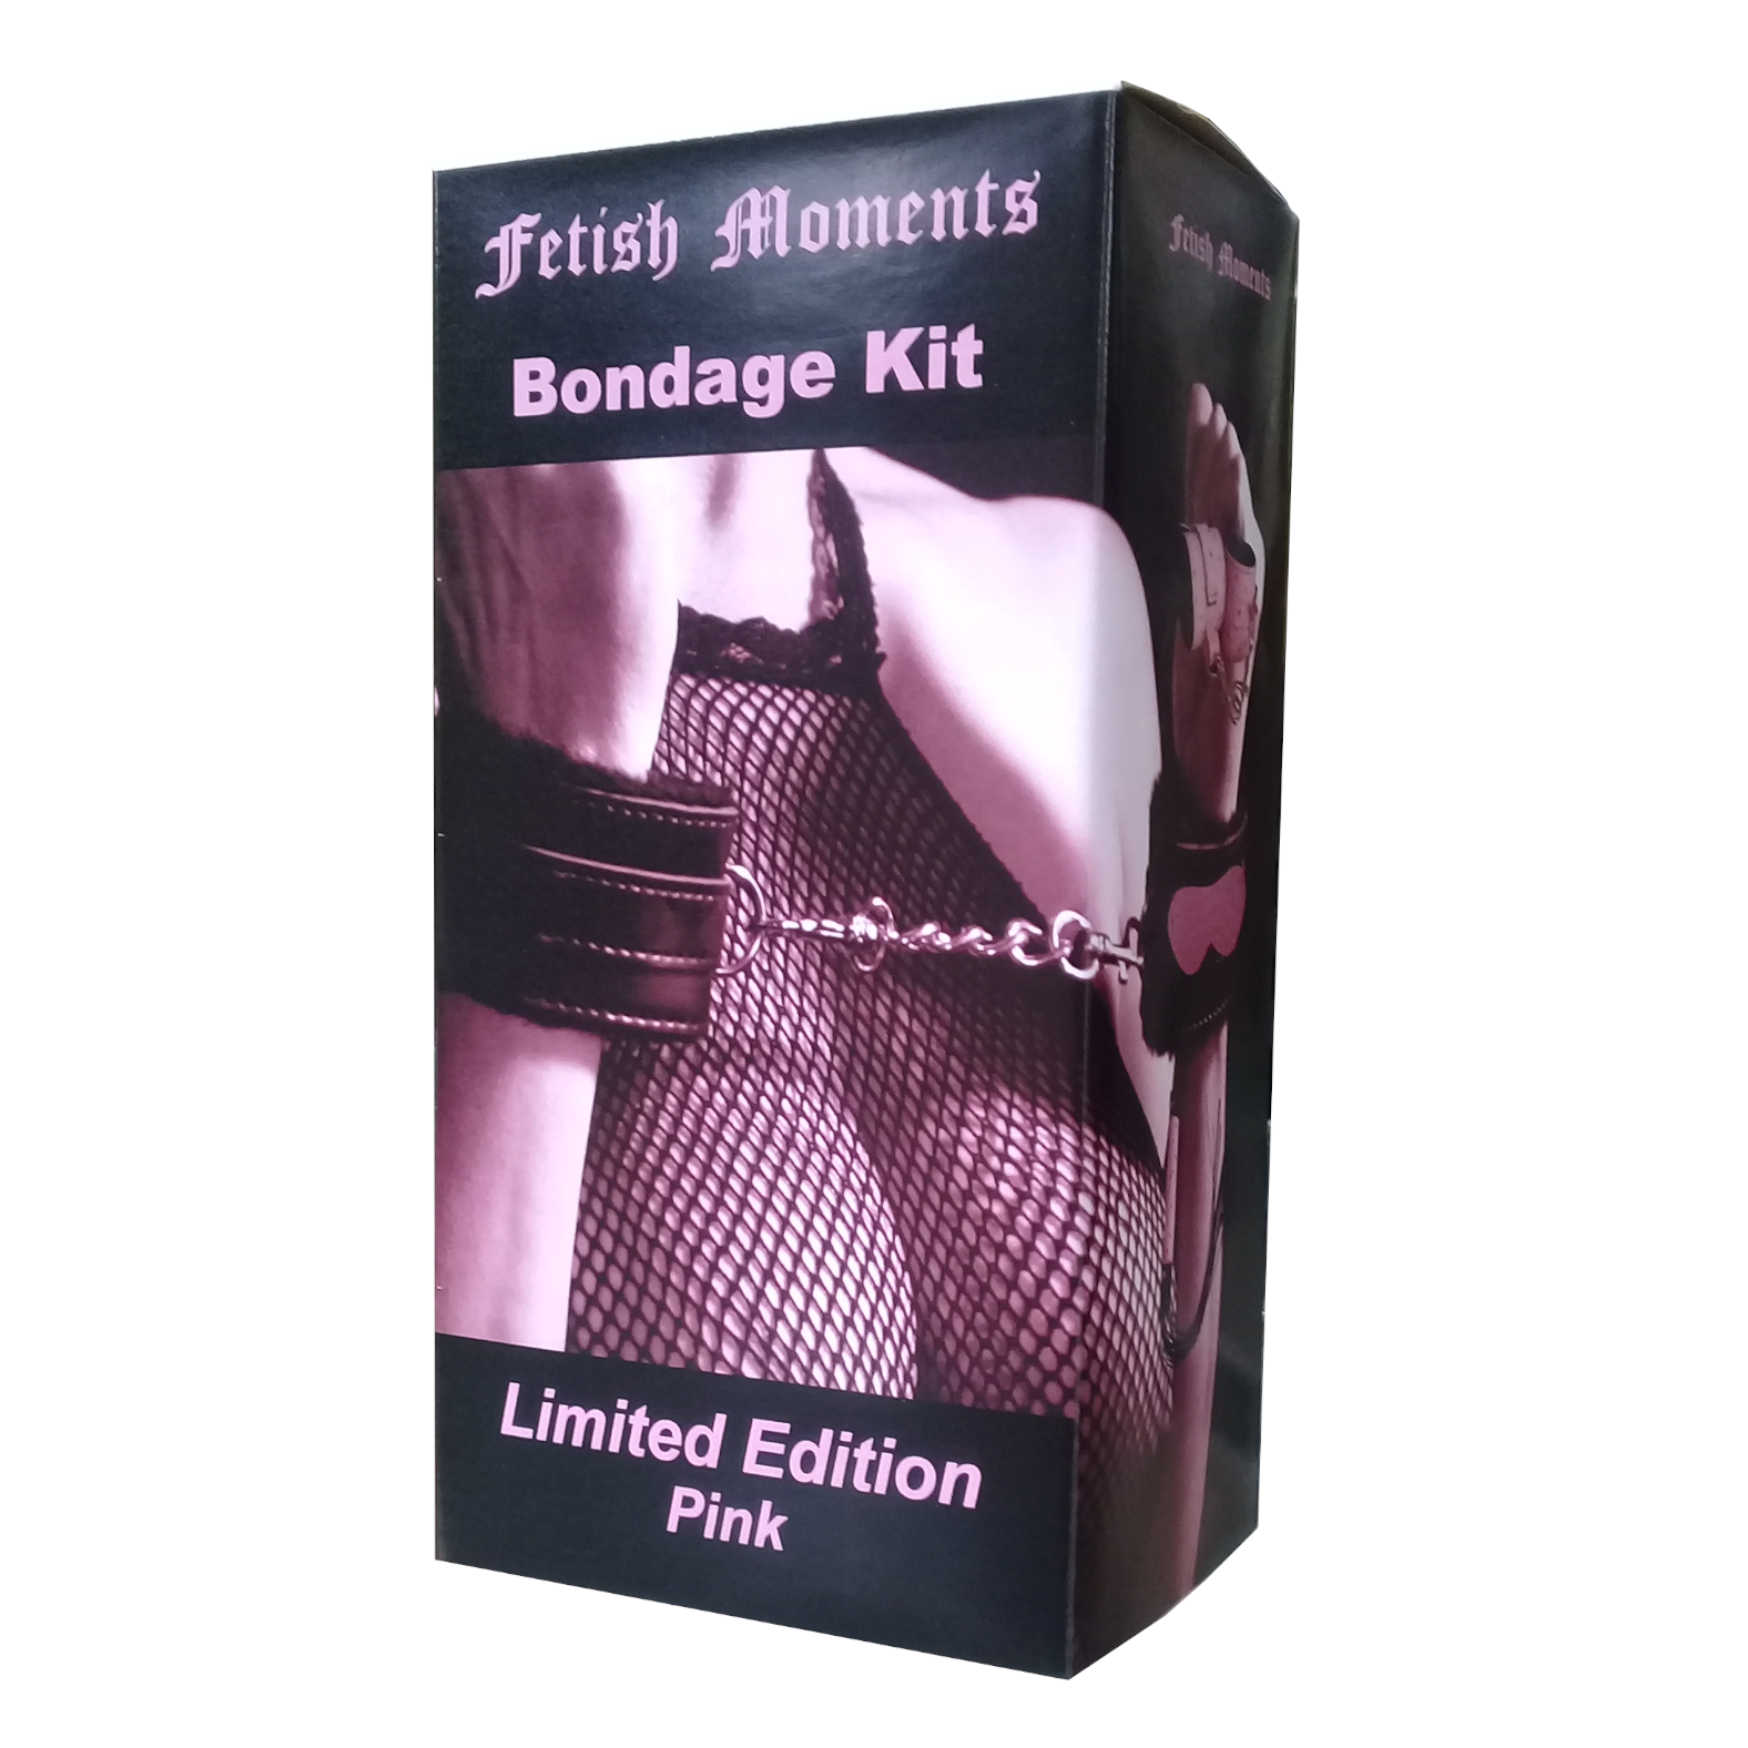 Limited Edition Bondage Kit Pink